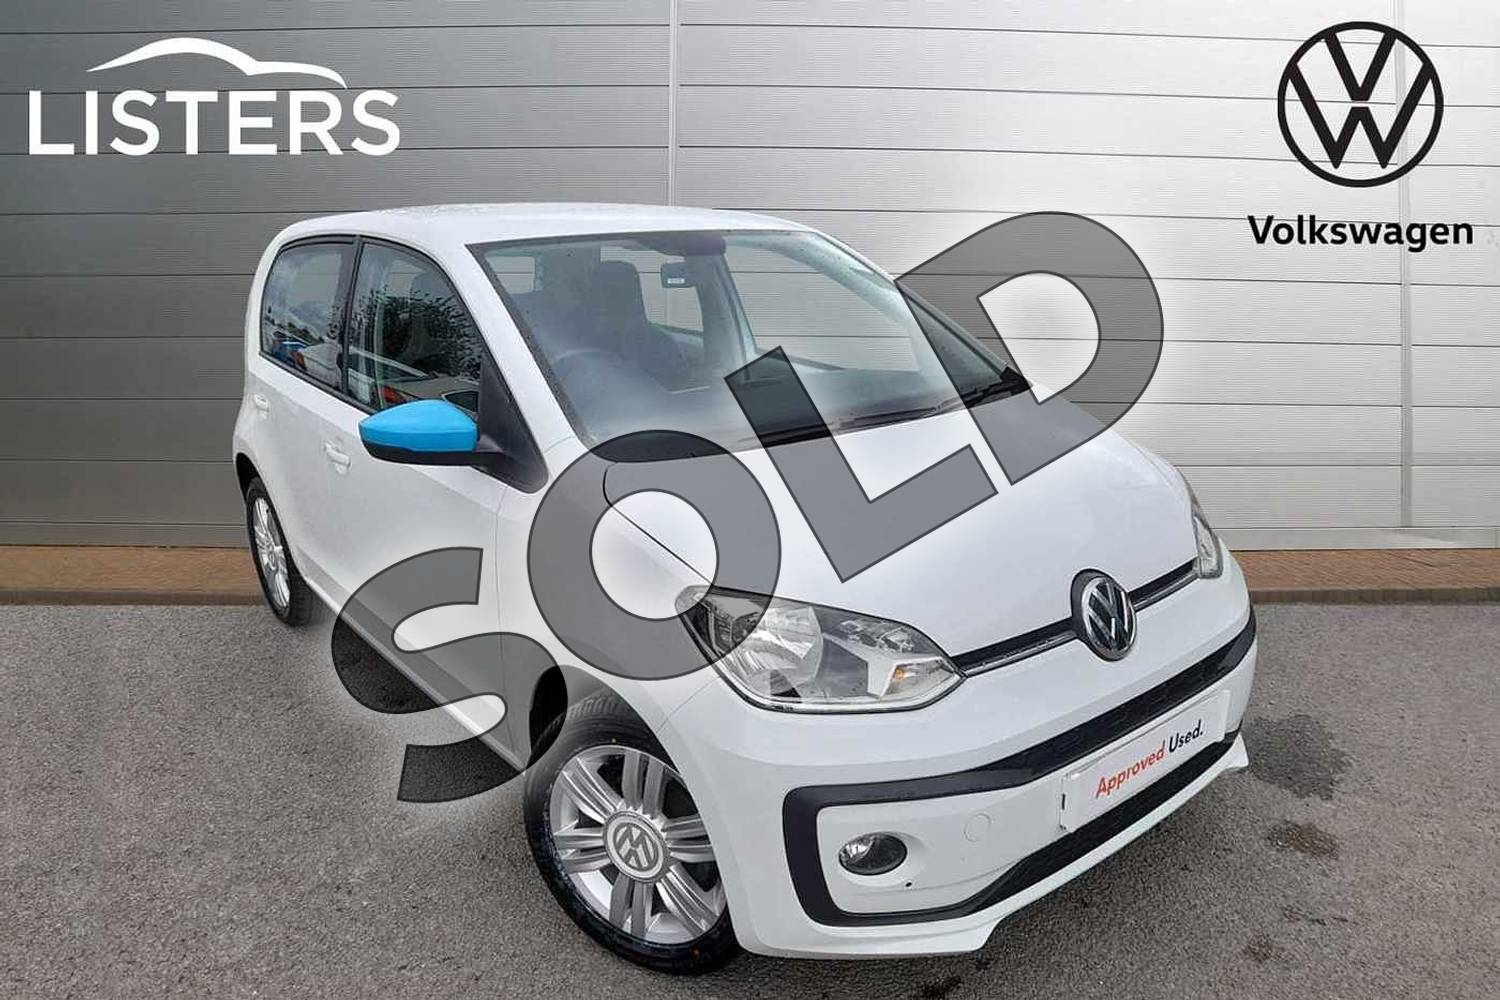 2018 Volkswagen Up Hatchback 1.0 High Up 5dr in Pure White at Listers Volkswagen Worcester